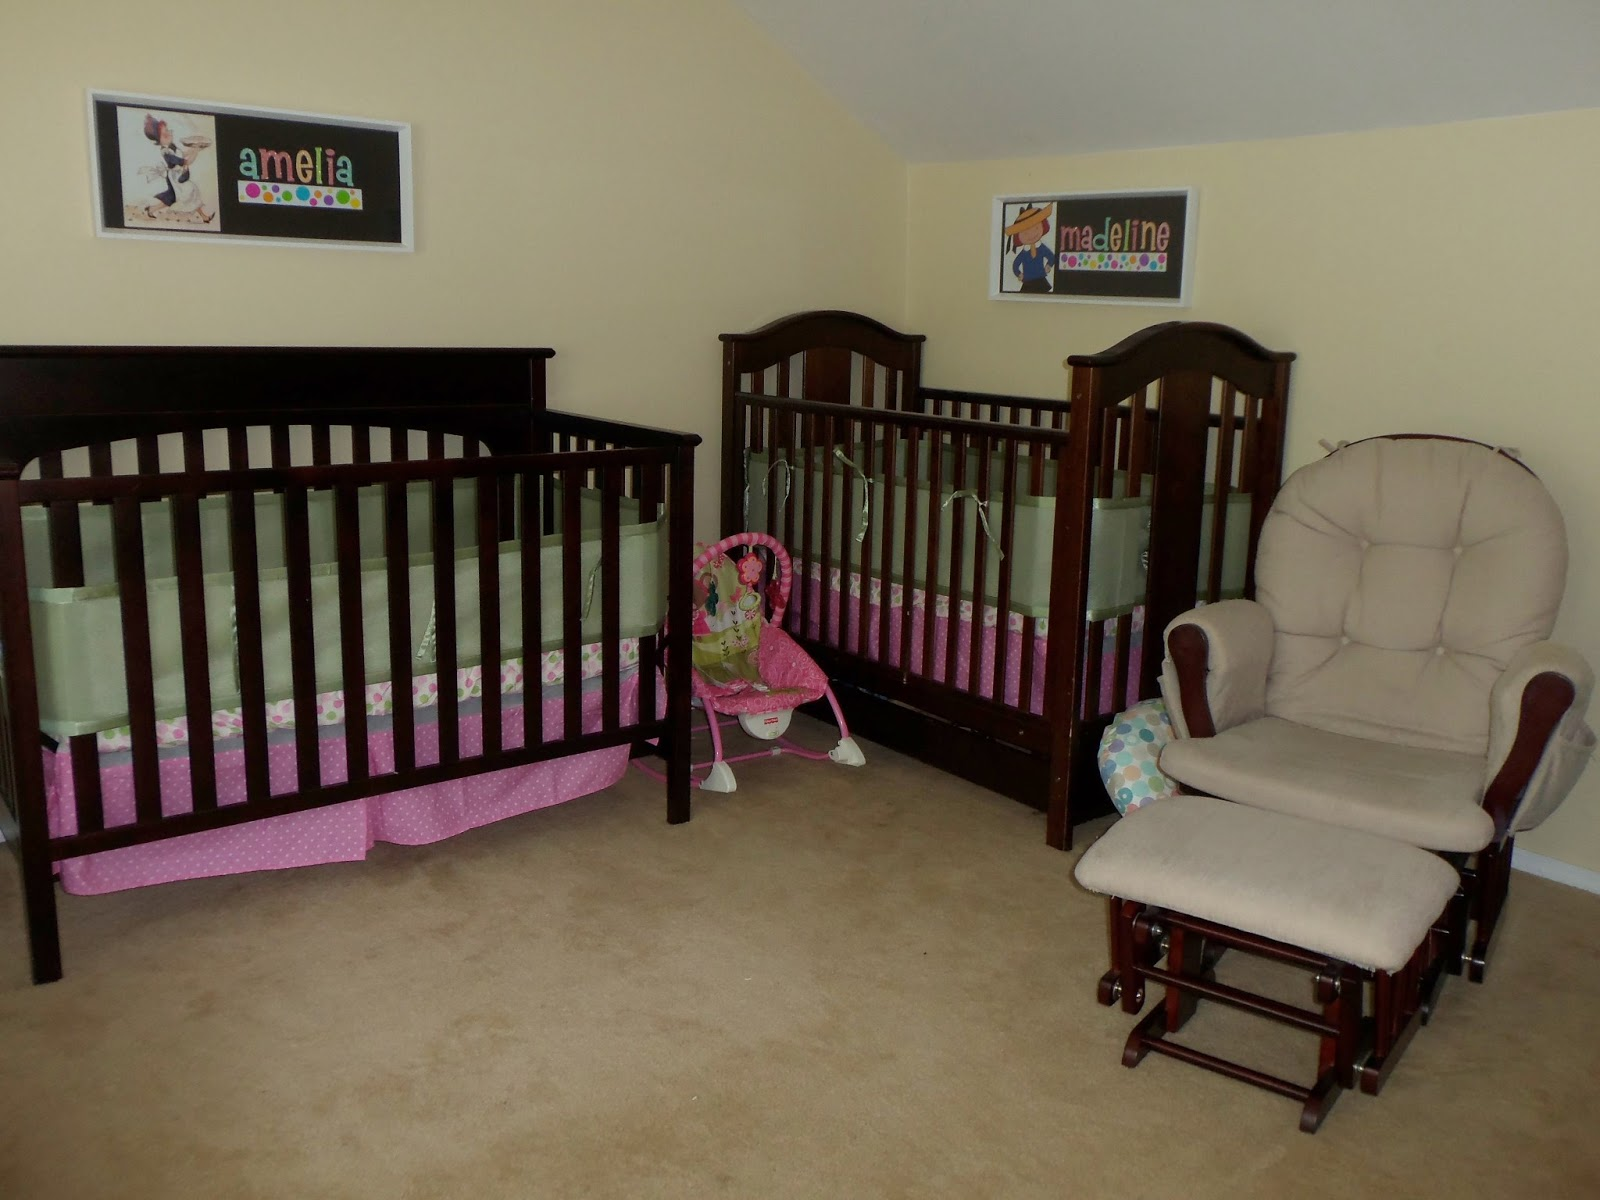 Crib for triplet babies - Finally James Crib Is In The Corner This Crib Also Has A Polka Dot Sheet And A Green Mesh Bumper Above Each Crib Hangs The Custom Name Art I Made